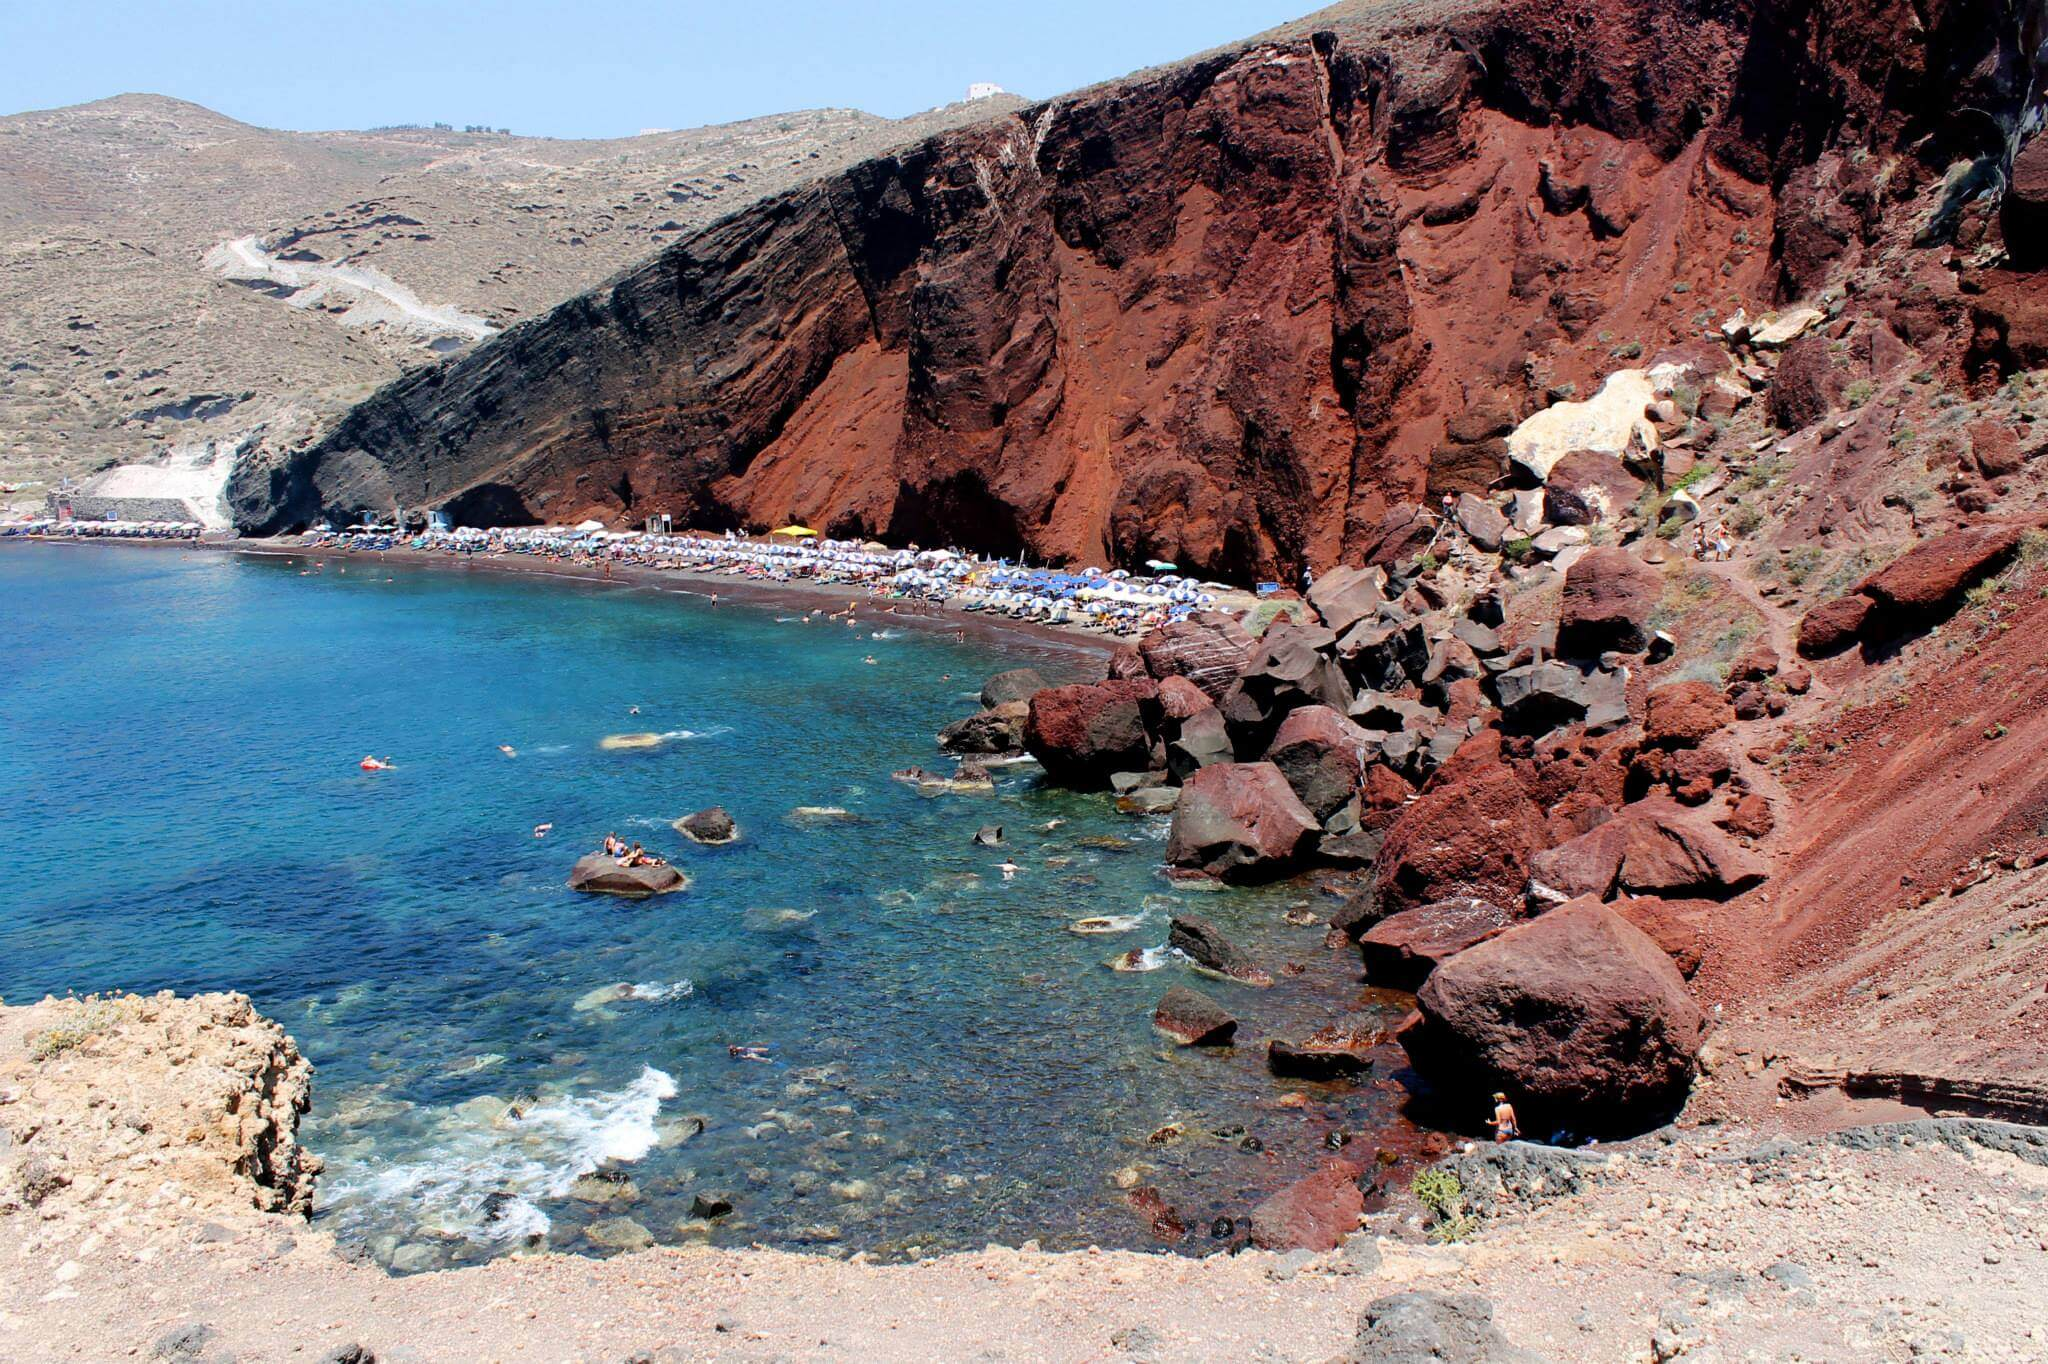 Red Beach in Santorini. Taken by Kirstie.